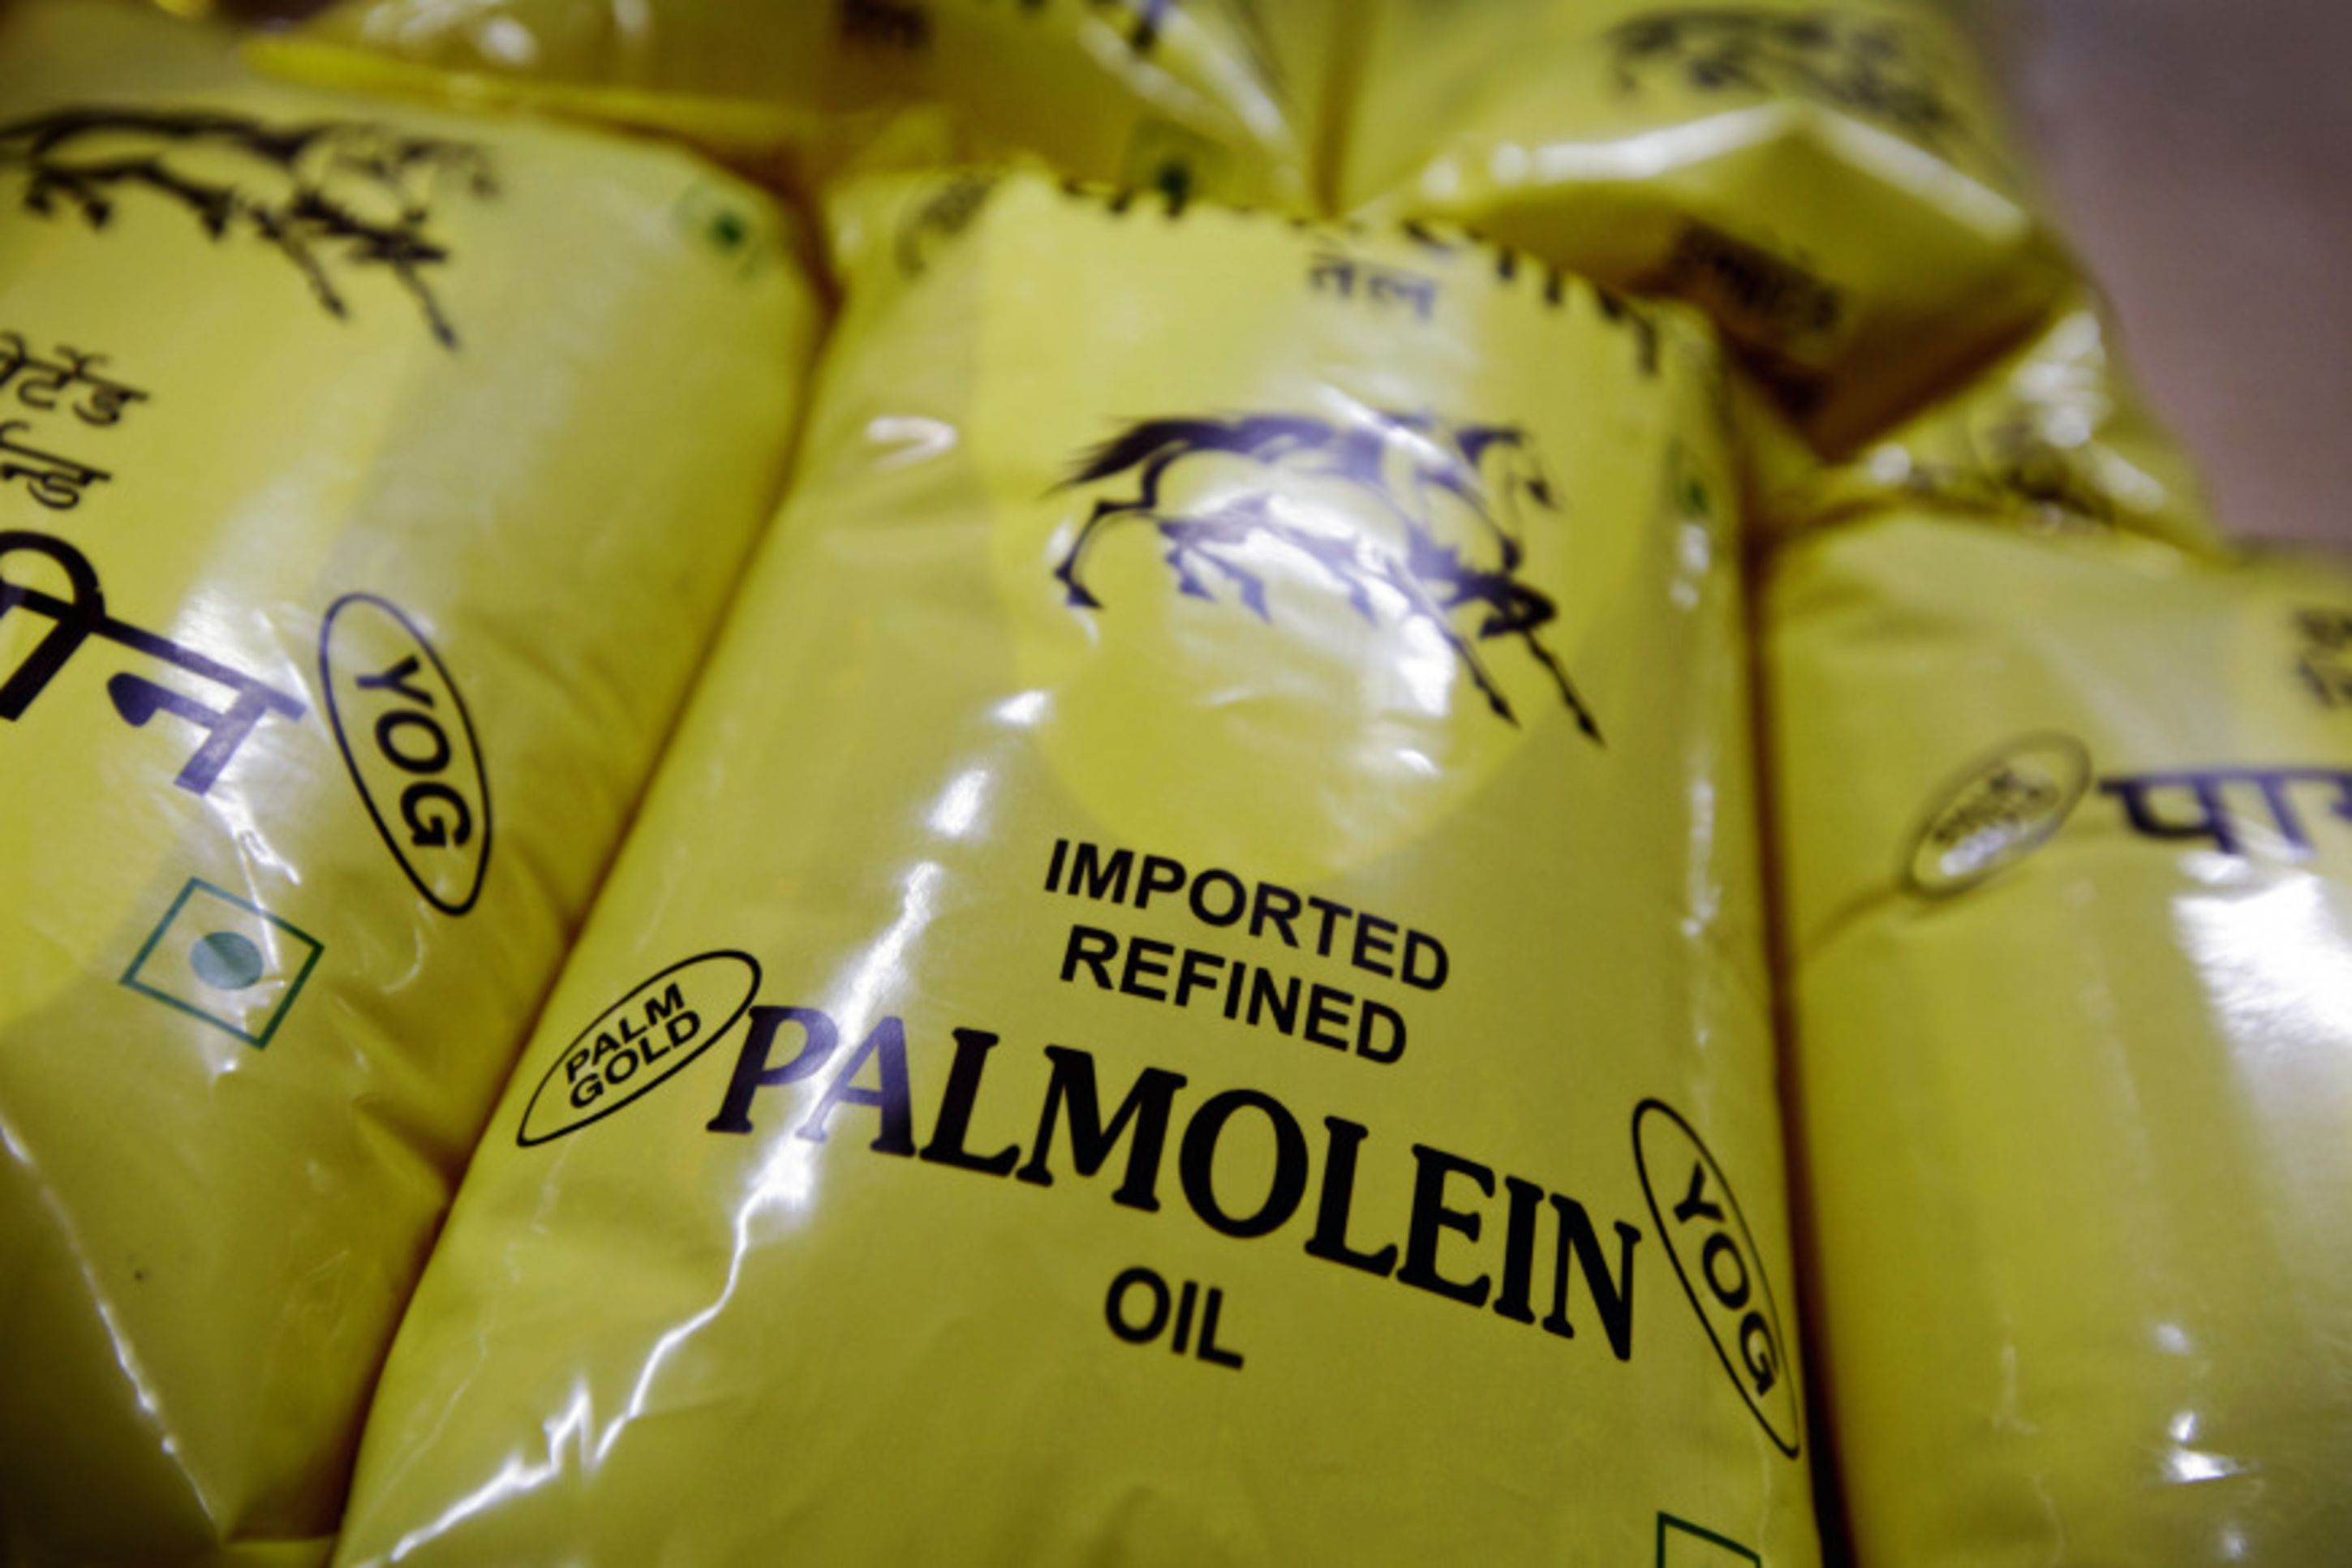 Eye Watering Palm Oil Price Sees India Switch To Sunflower Oil